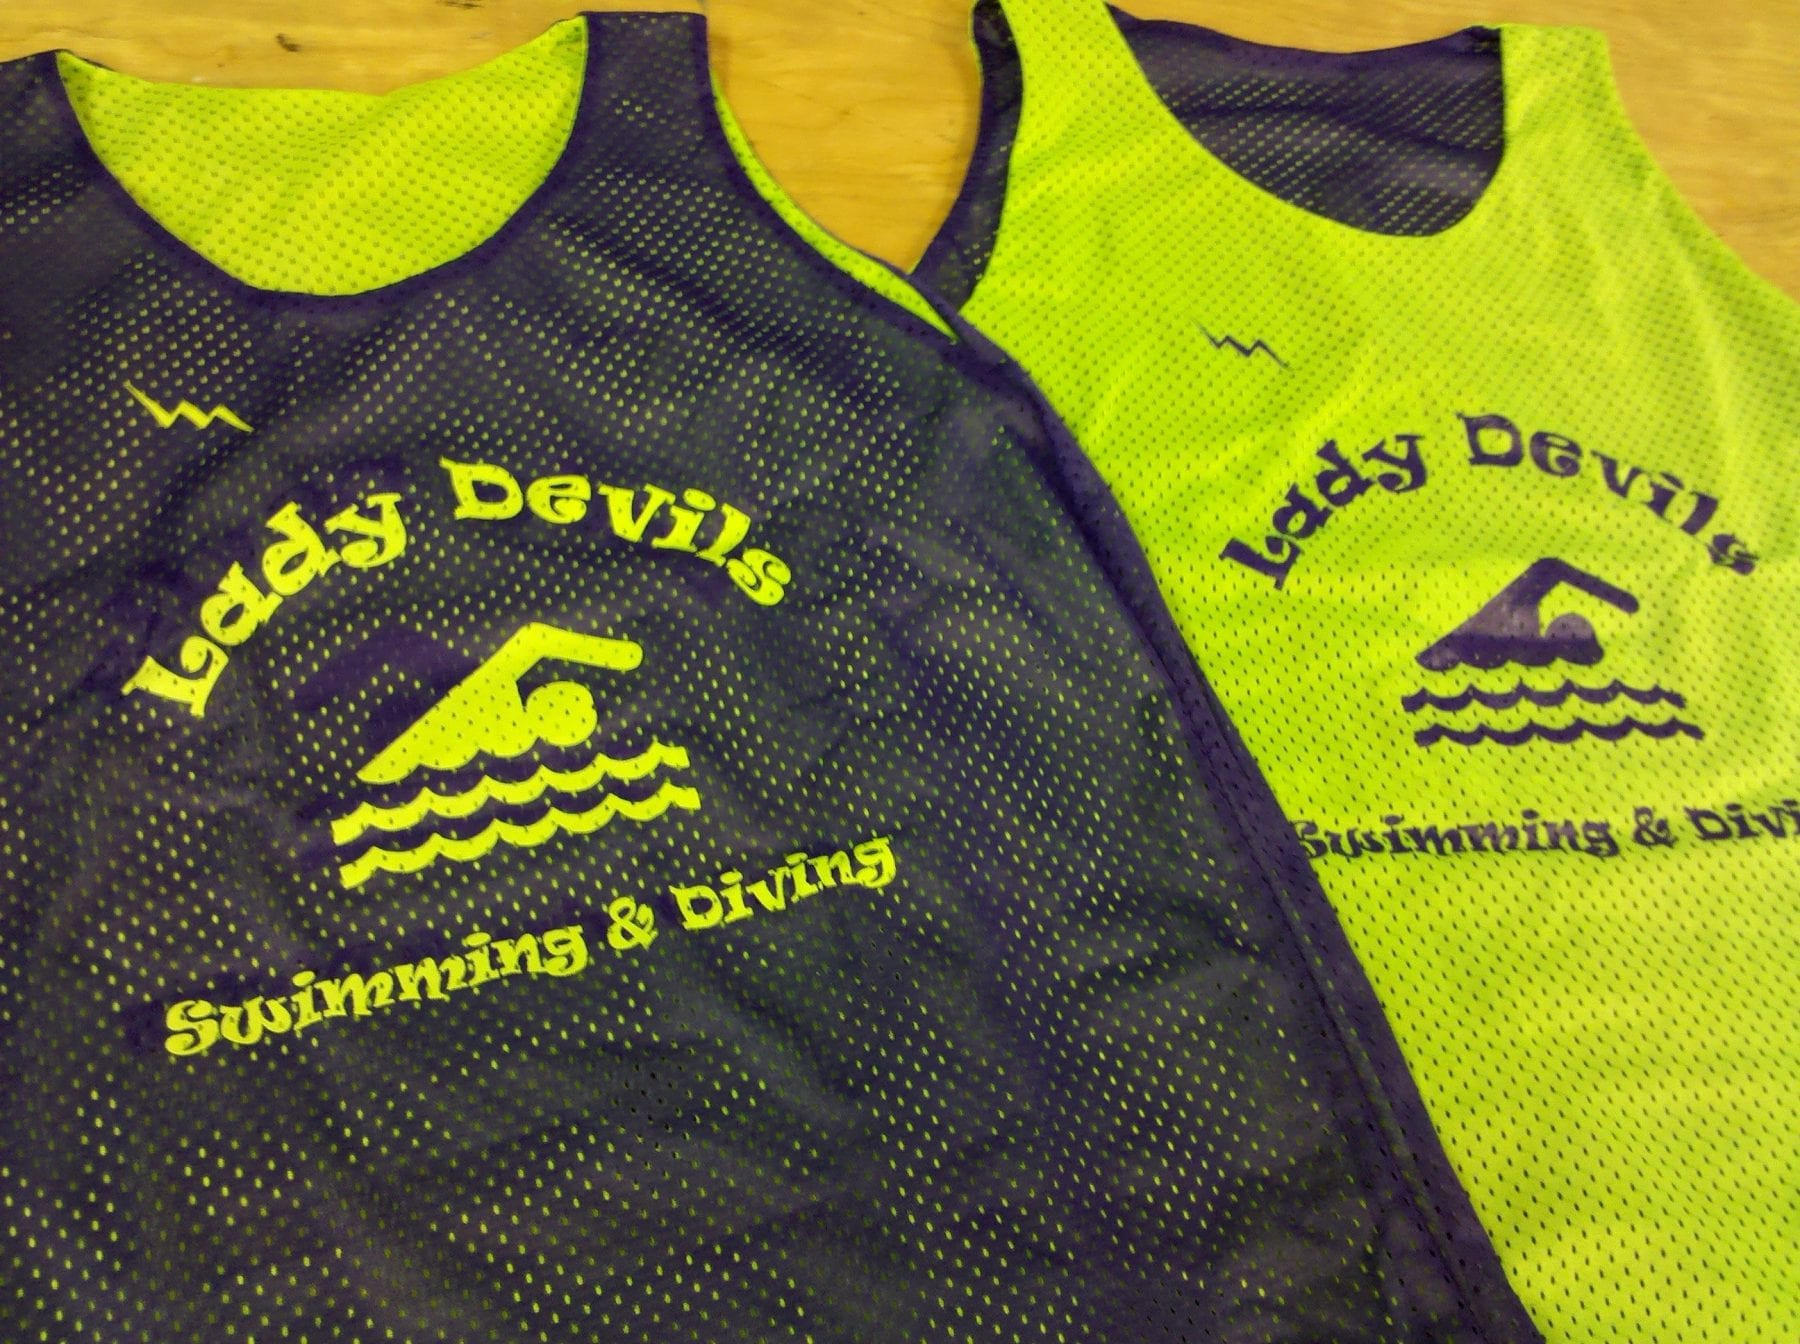 lady devils swimming pinnies